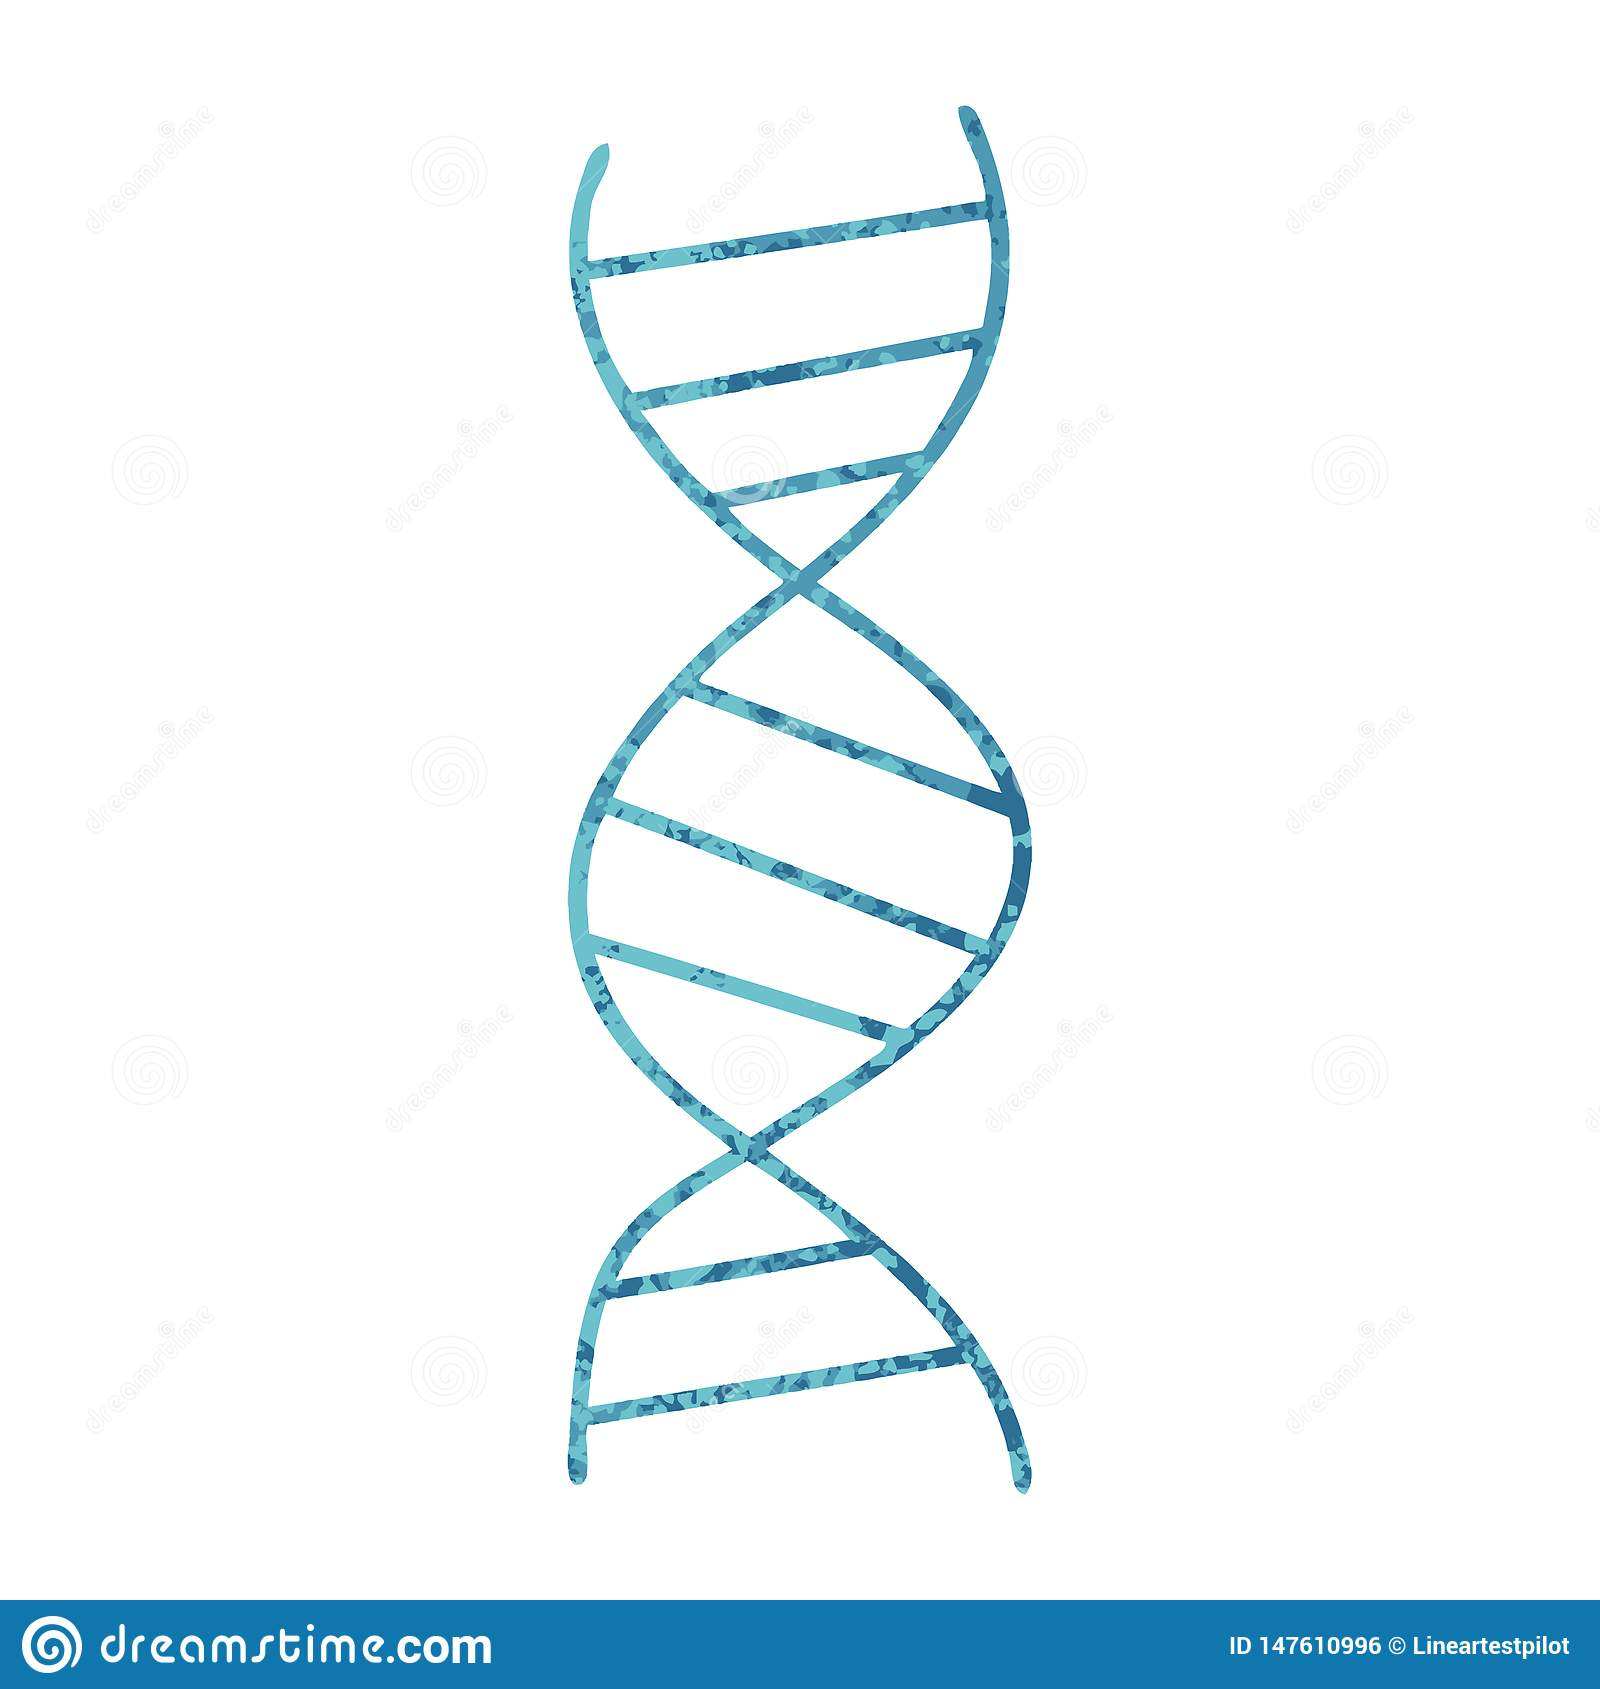 Cartoon Dna Dna Strand Science Chemisitry Biology Cute Illustration.